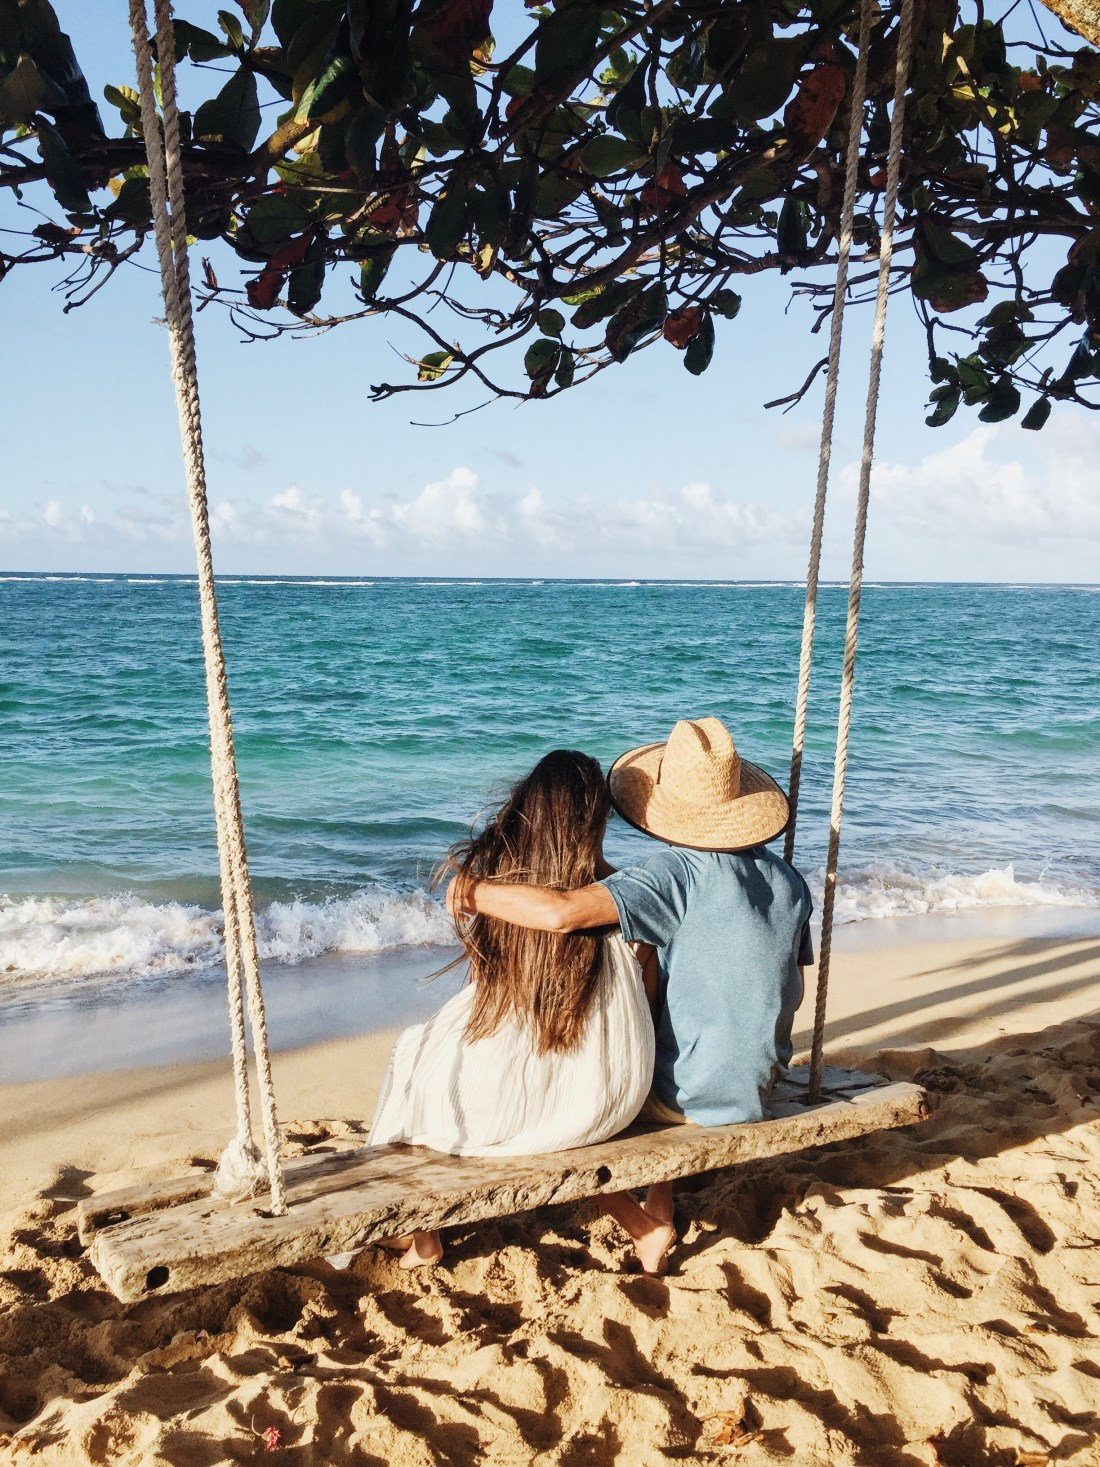 Beach Swing on Oahu | Beach Swing in Lai'e | Couple in Love | Travel Bloggers | Travel Blogger's Guide to Oahu via @elanaloo + elanaloo.com